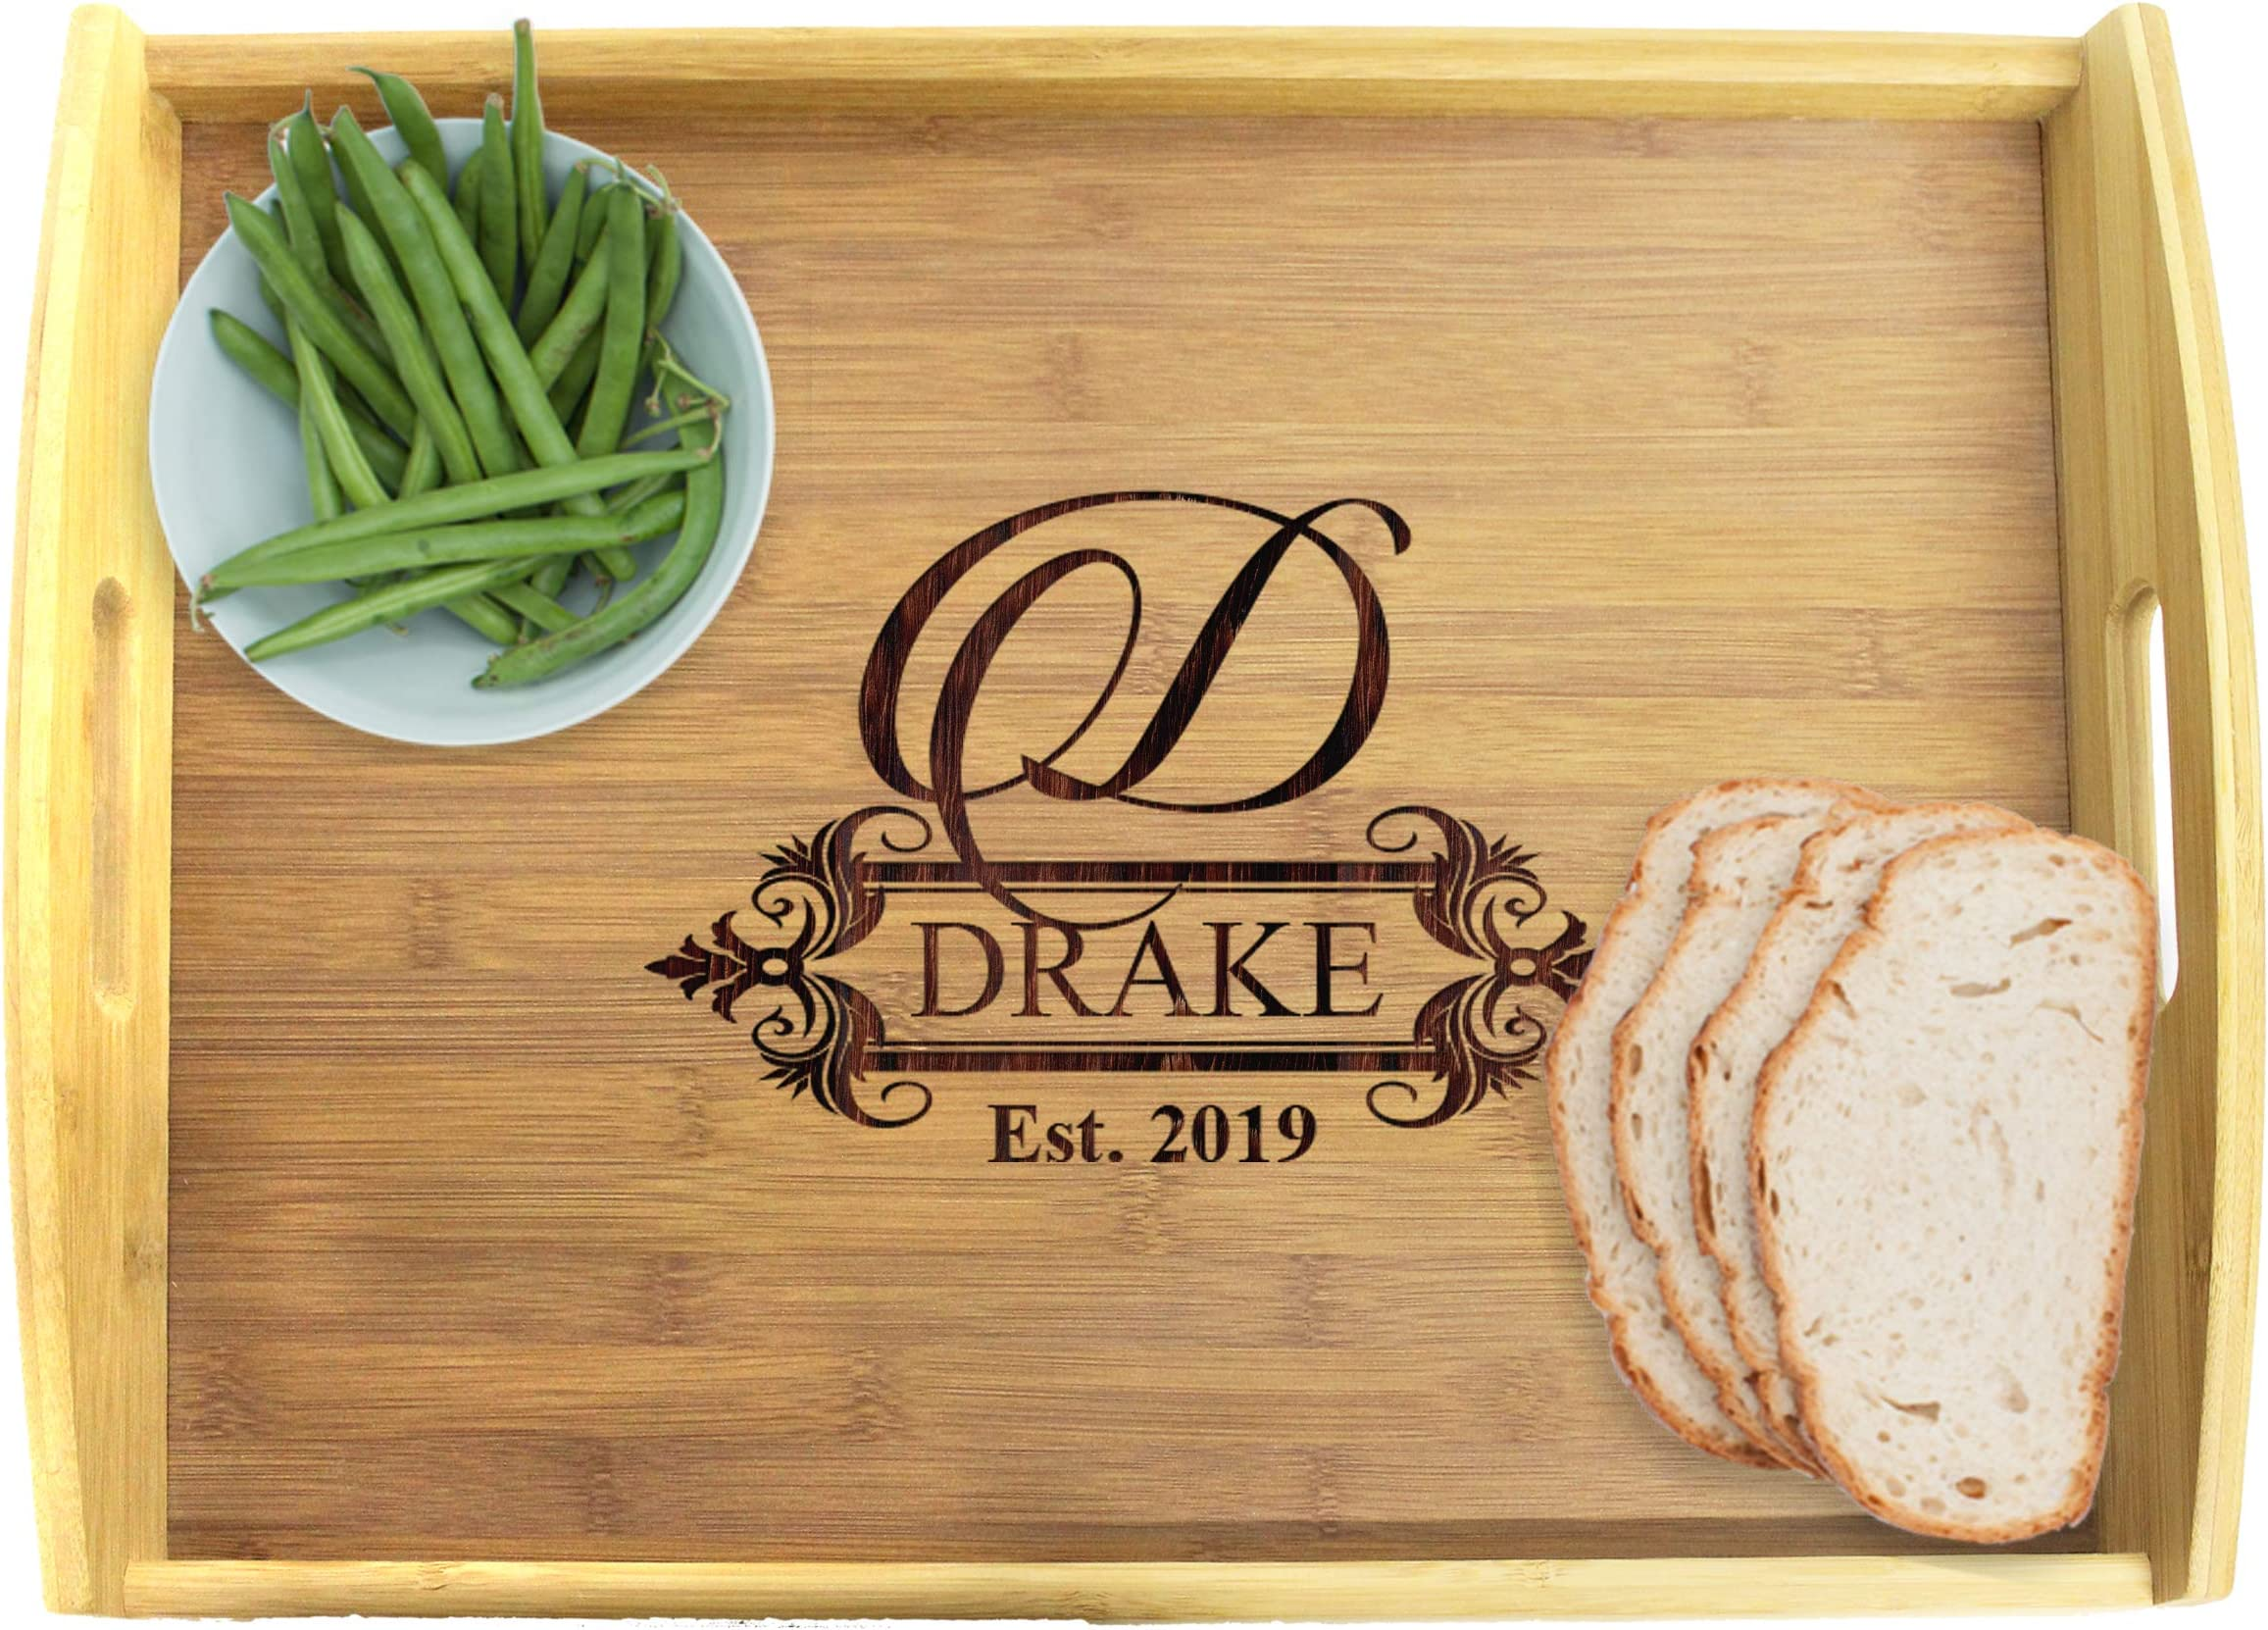 Personalized Handcrafted Solid Pine Wood Shiplap Decorative Tray